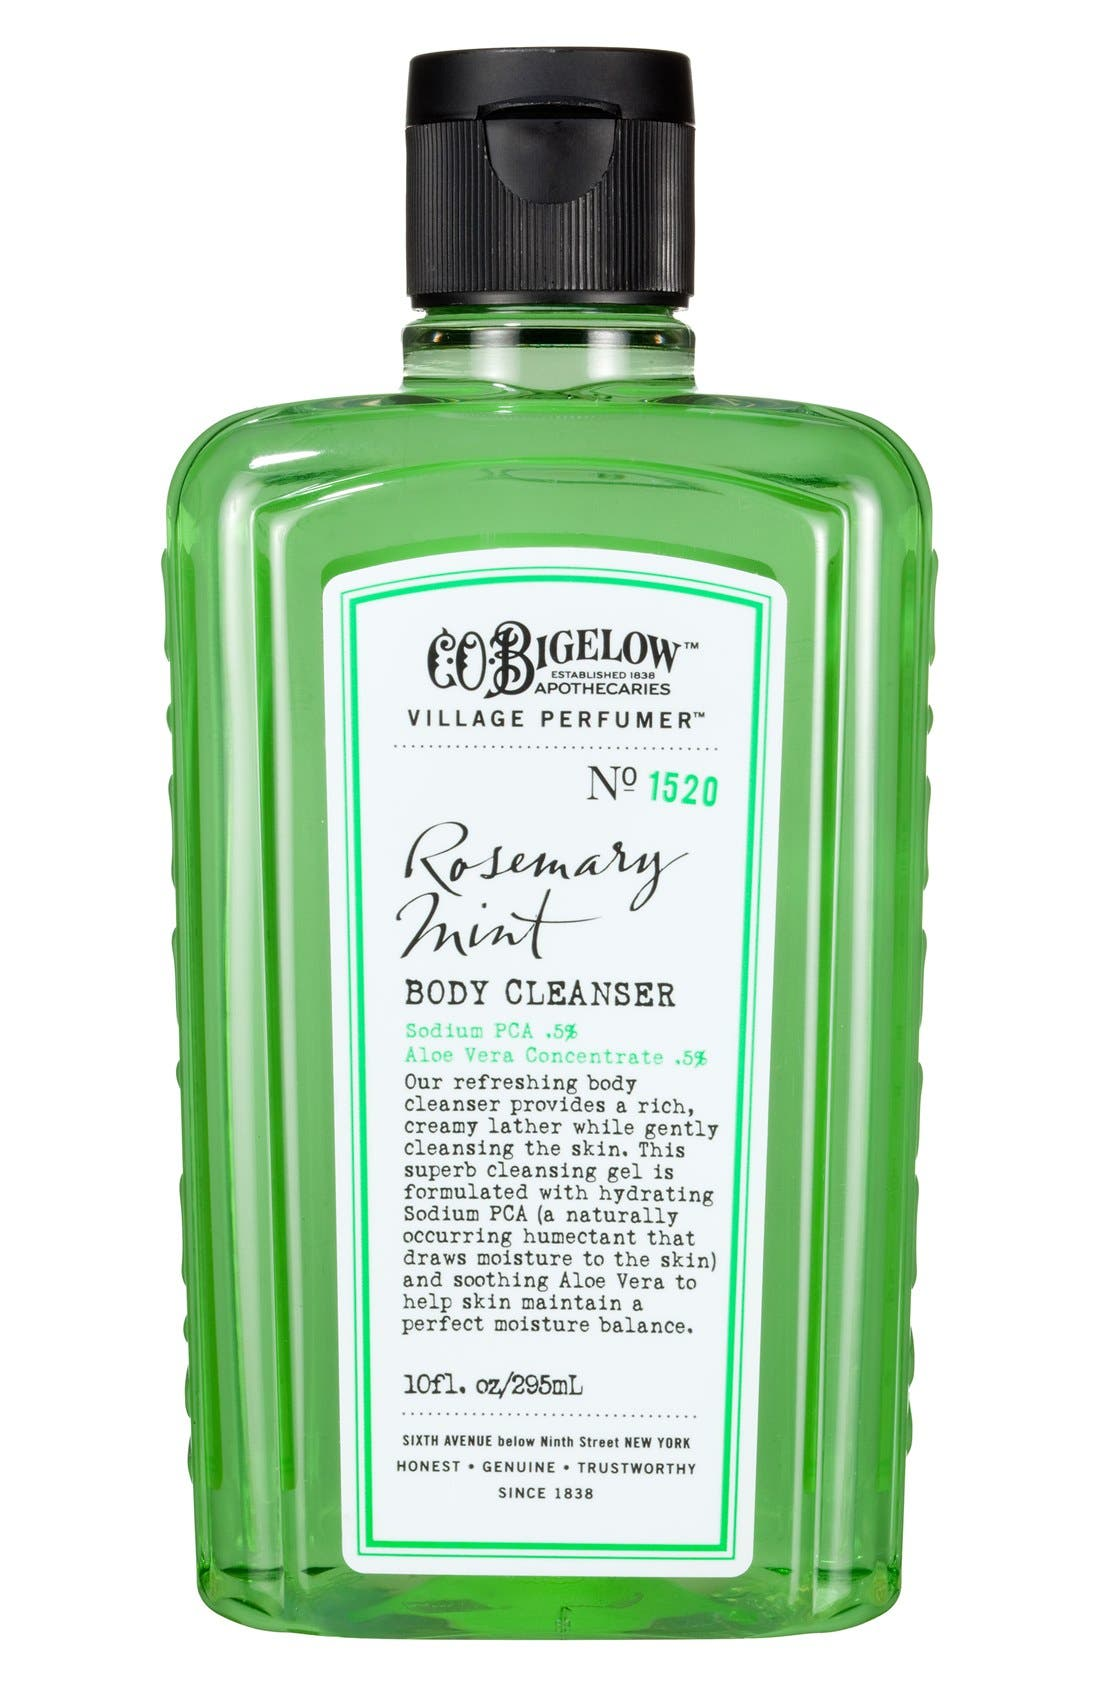 C.O. Bigelow® Body Cleanser